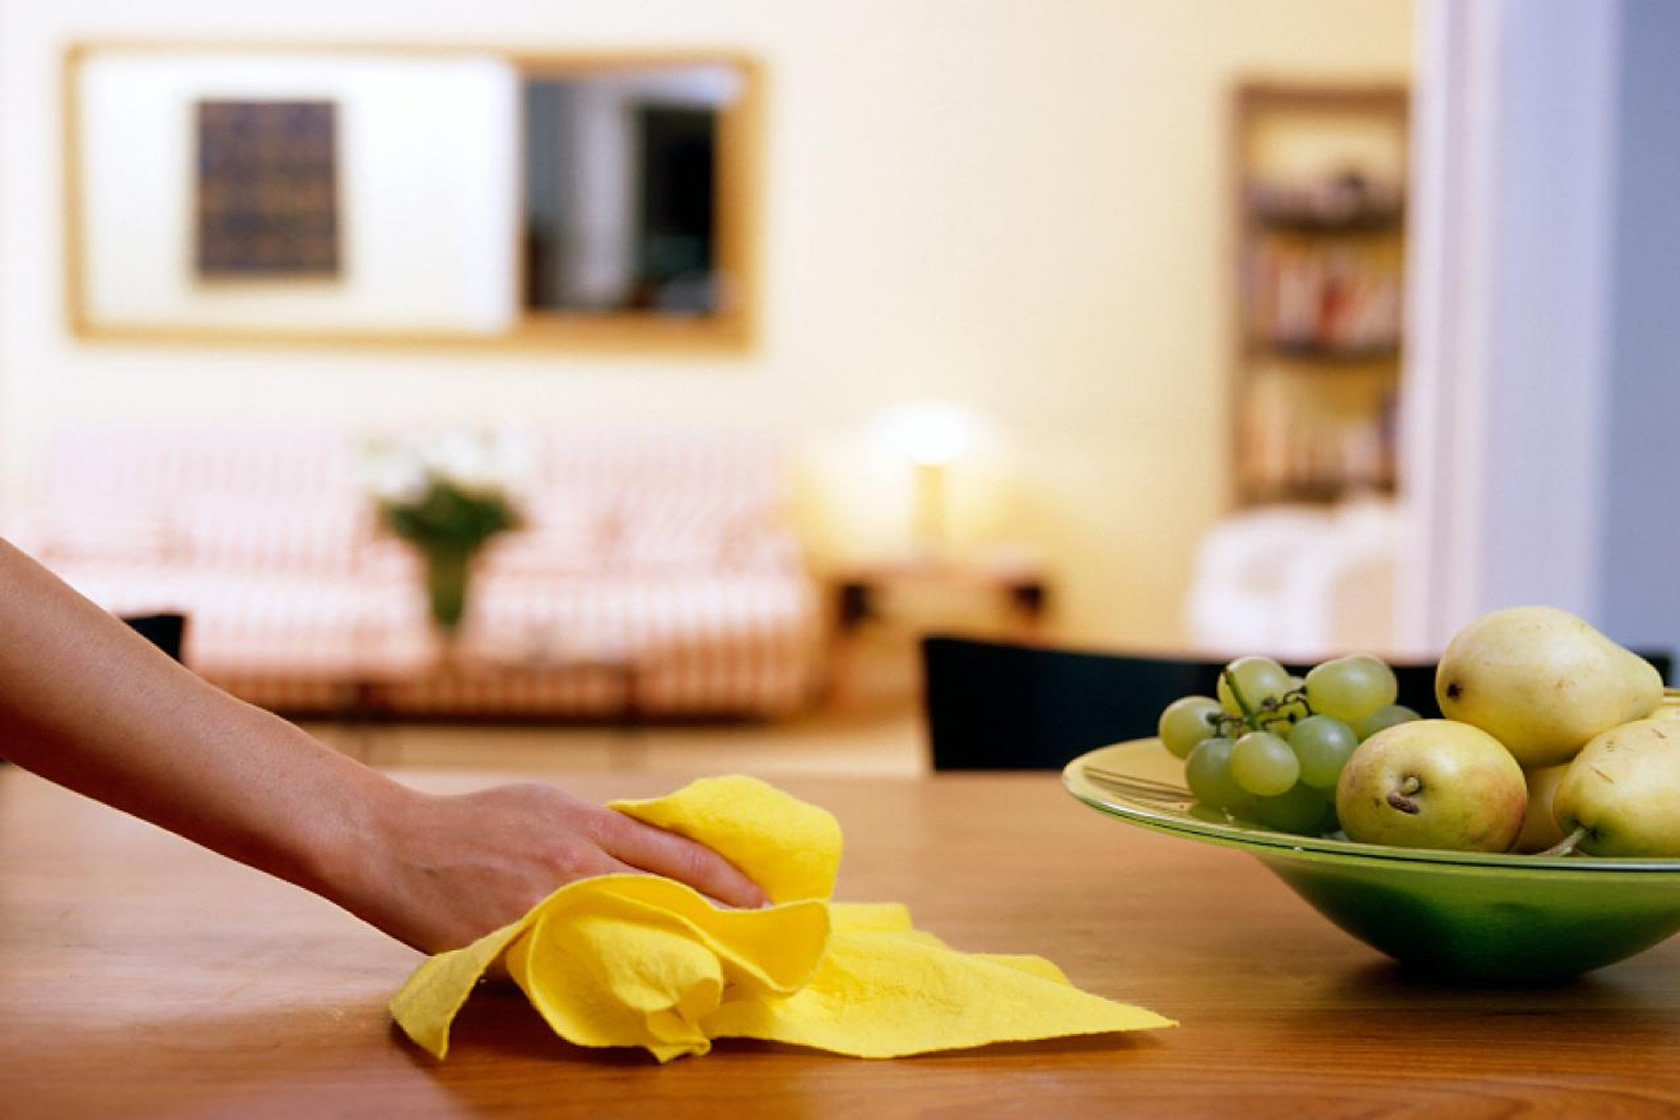 Wood Furniture Cleaning Tips